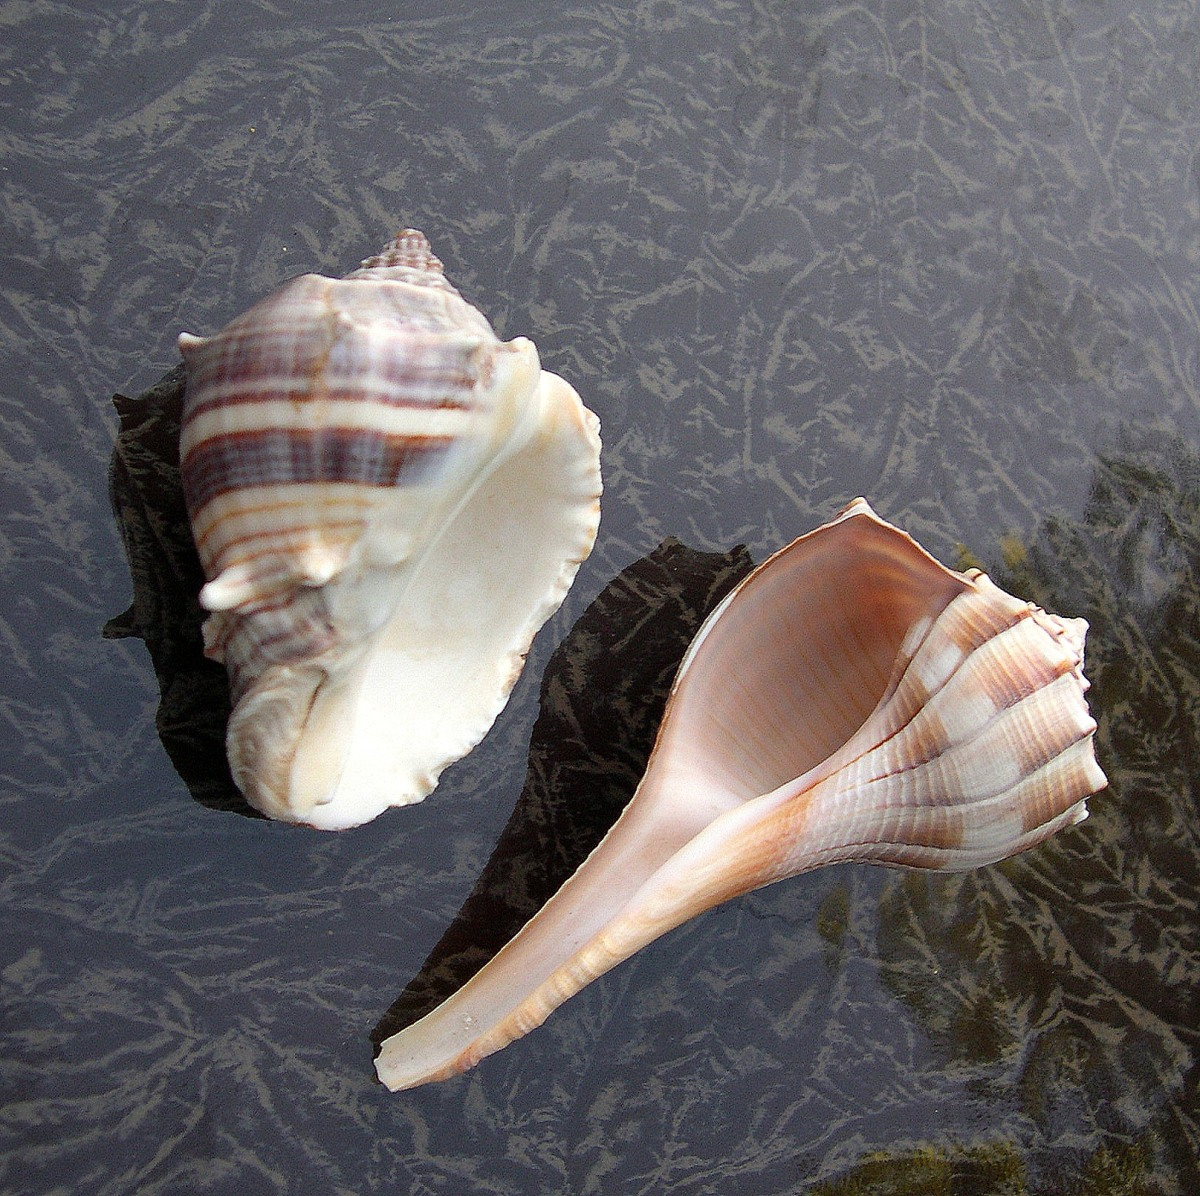 The Left-Handed Seashell is the Florida Lightning Whelk